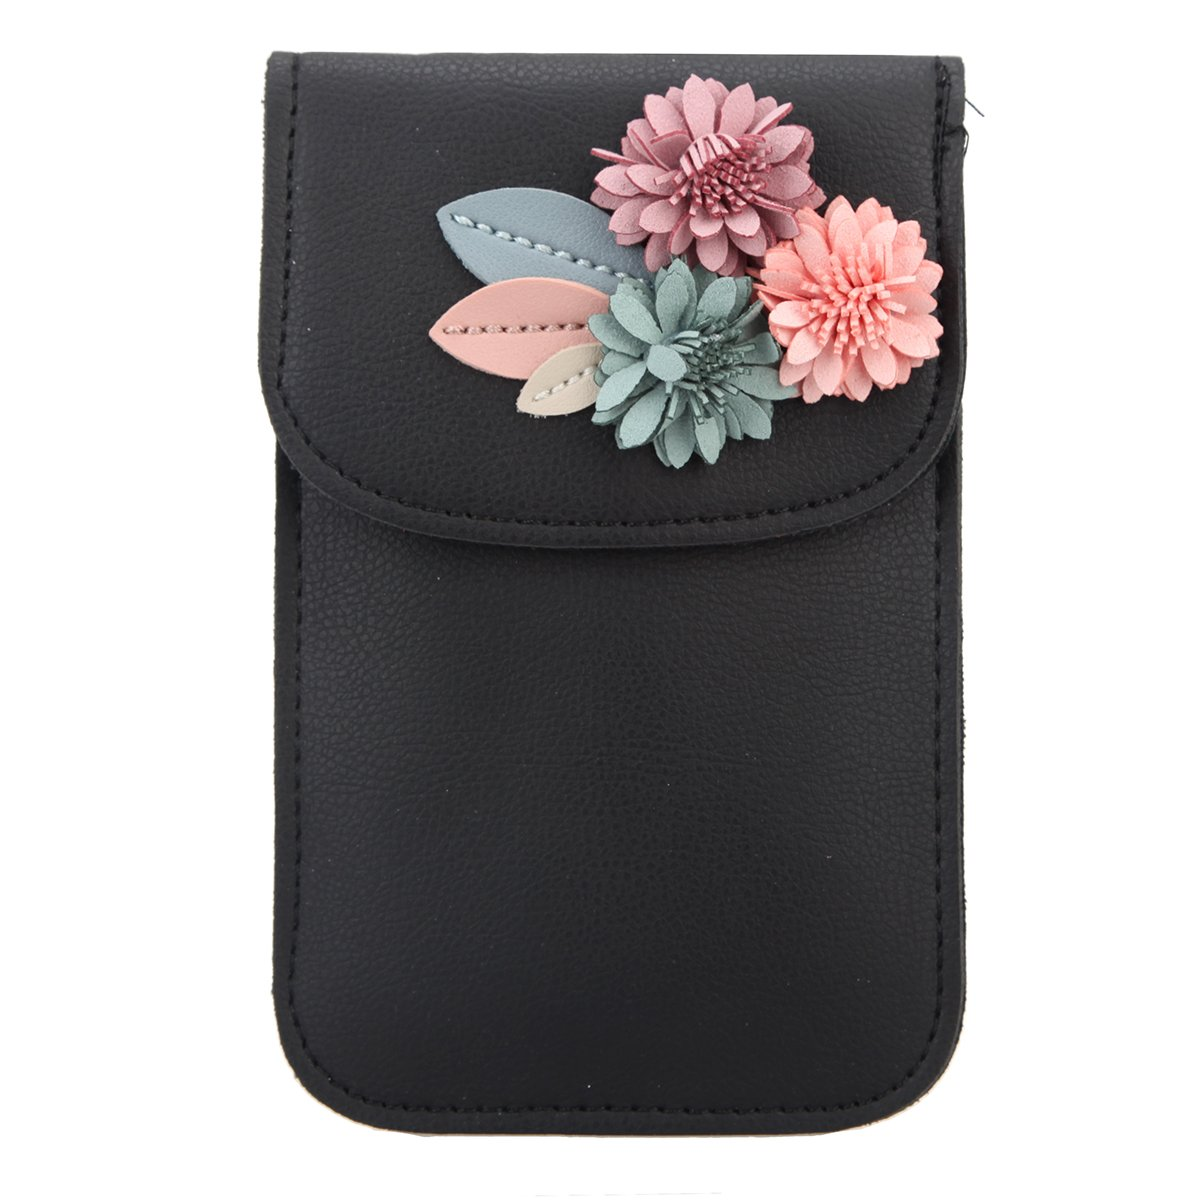 Fawziya Clutch Flower Evening Bags And Clutches For Women Wallet PU Leather Mobile Phone Bag-Black